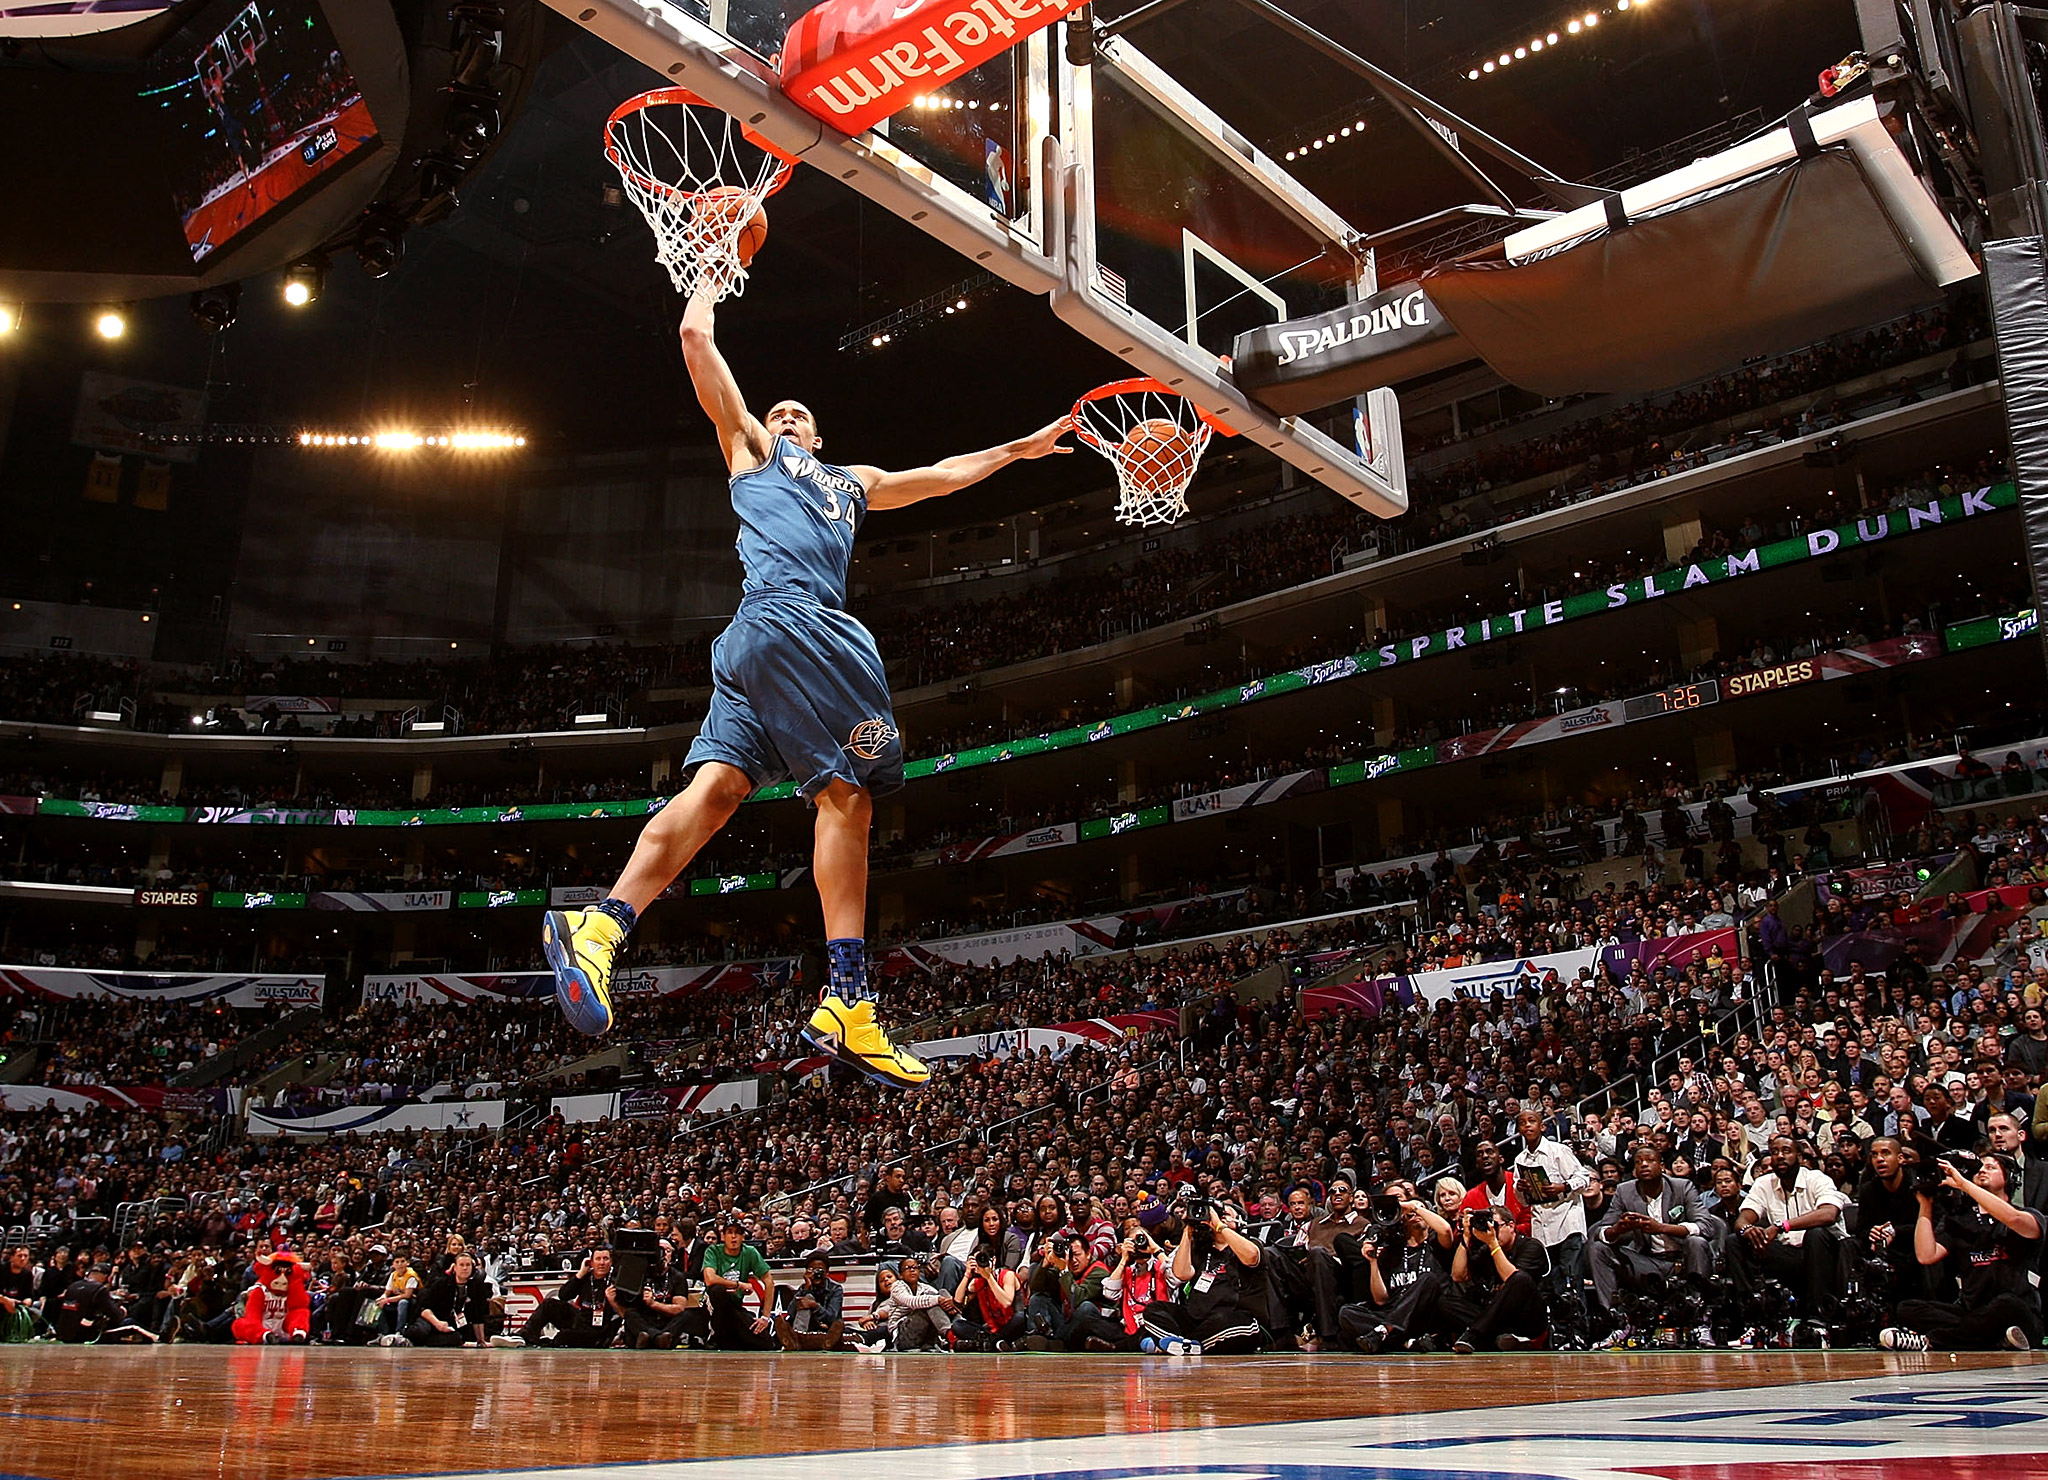 Nba best all star slam dunks espn voltagebd Image collections